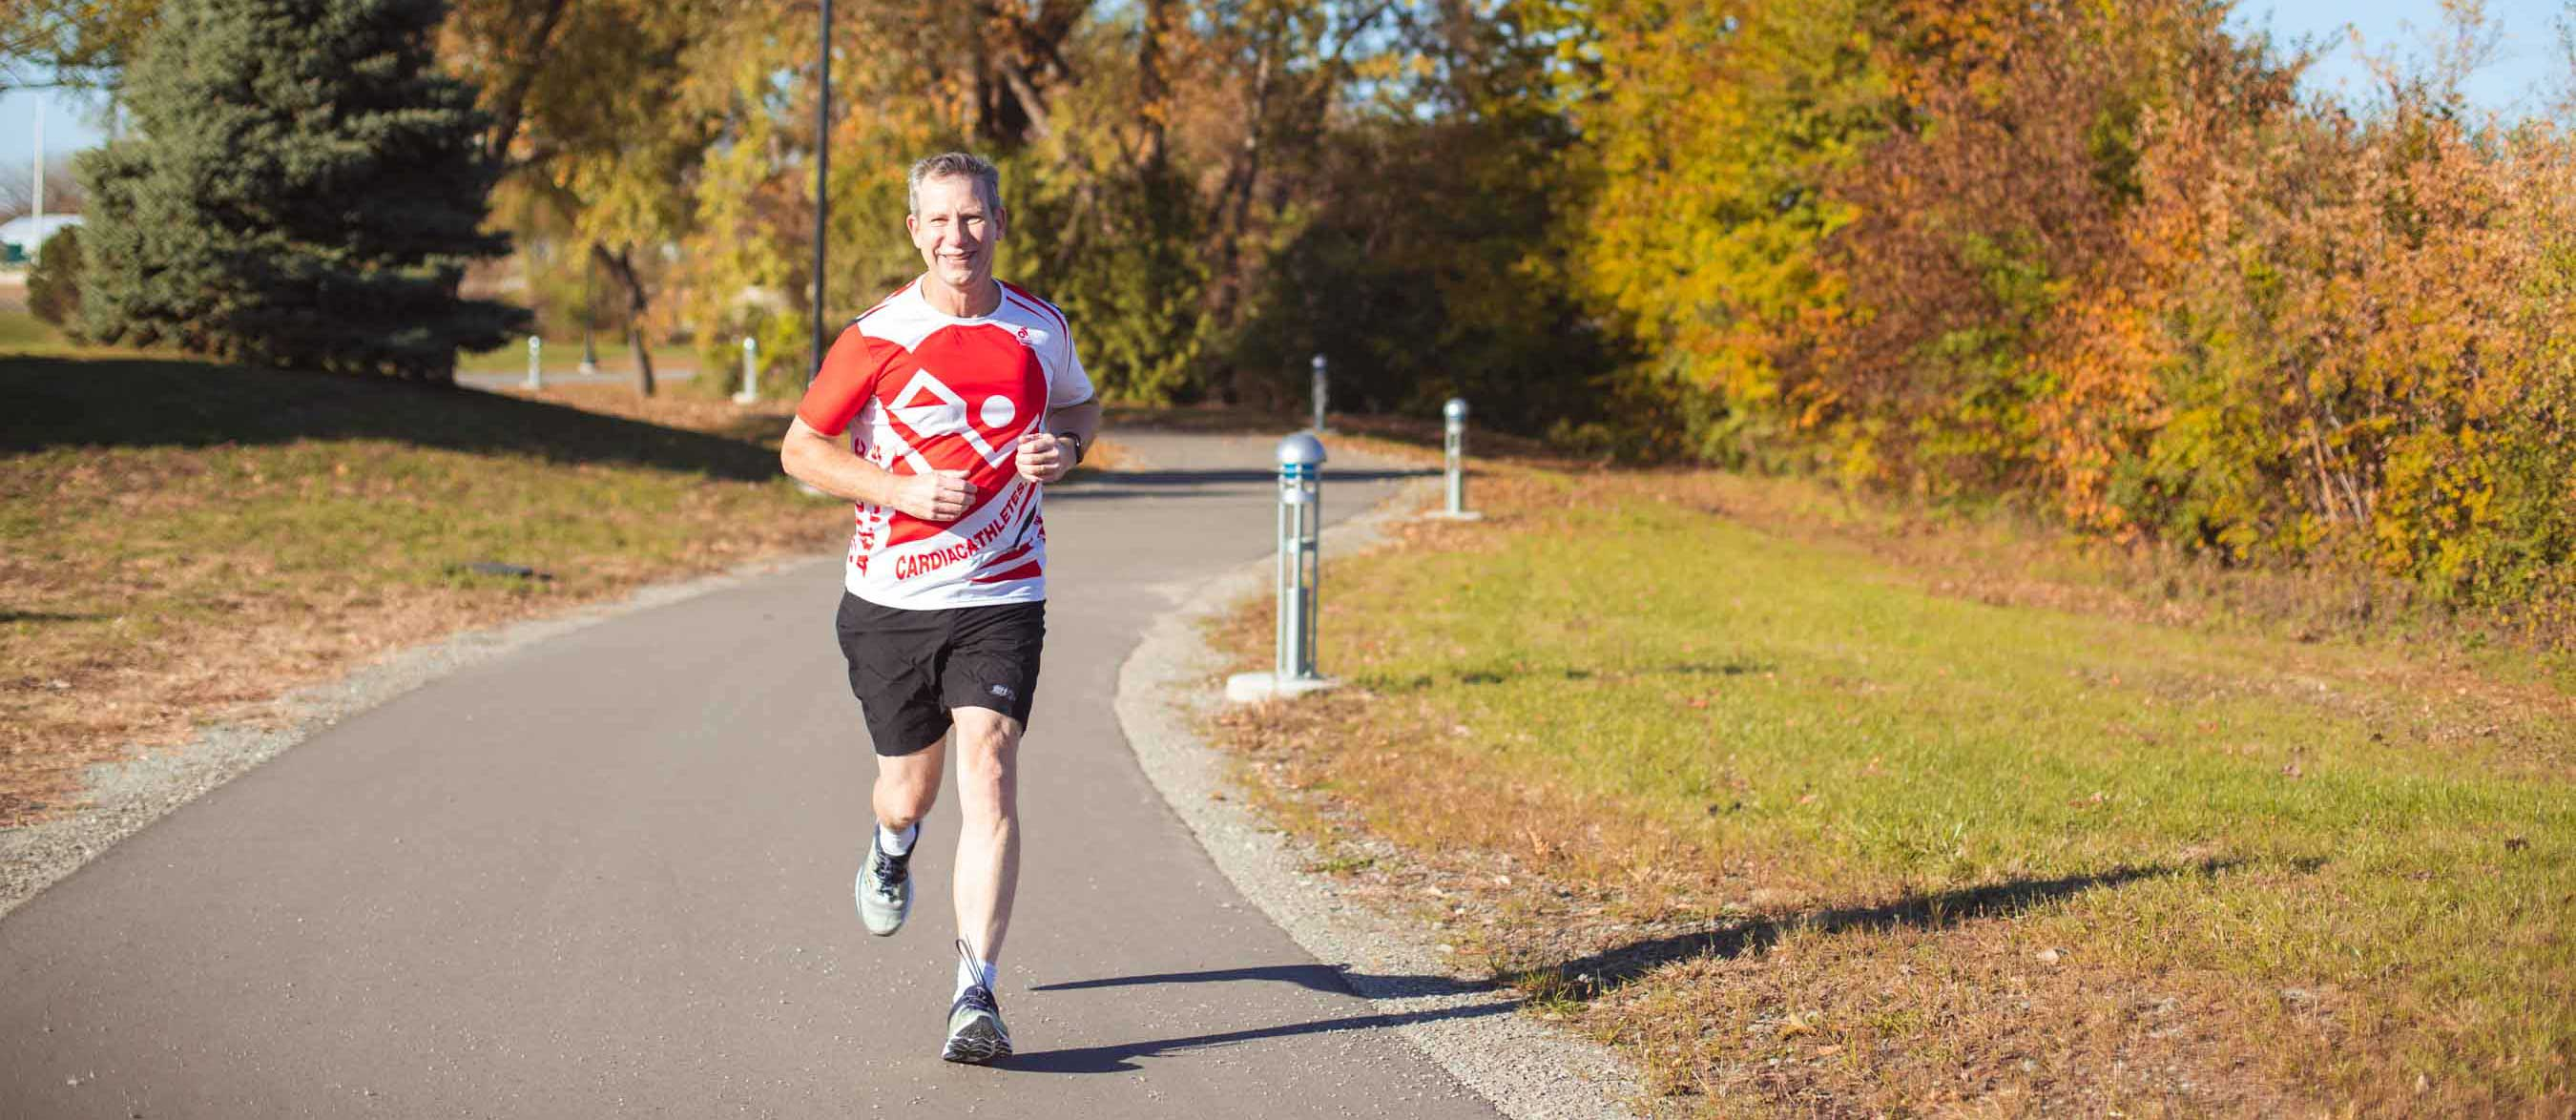 White man running outside on a paved trail in fall